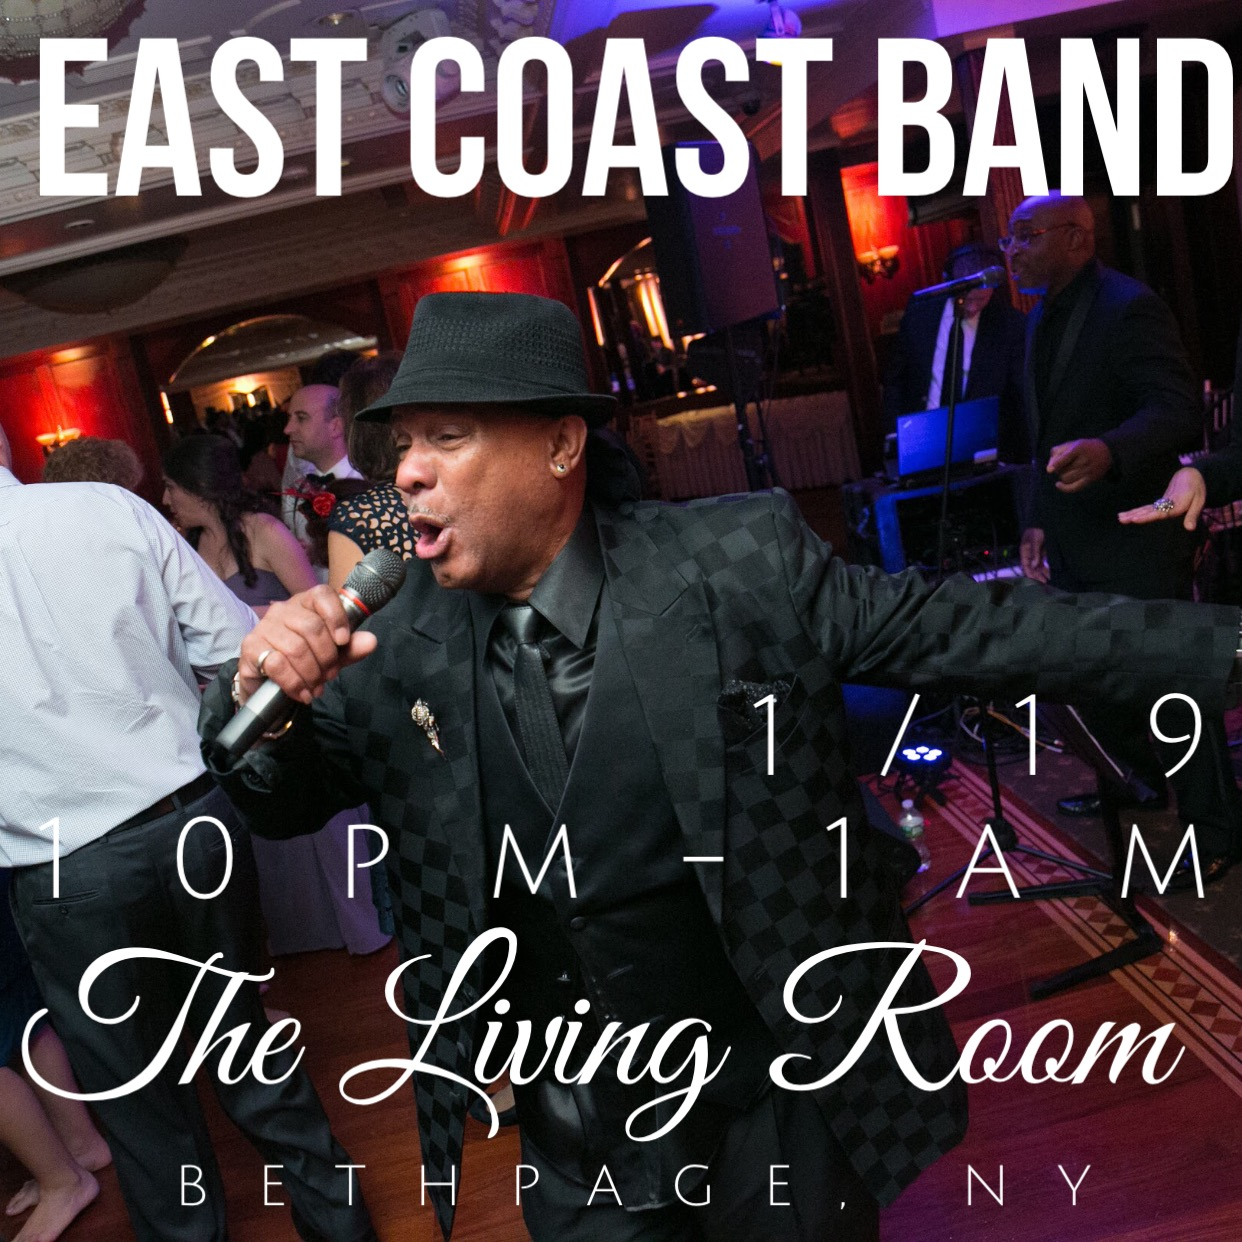 living room bethpage new york images of wall decor live band schedule | east coast